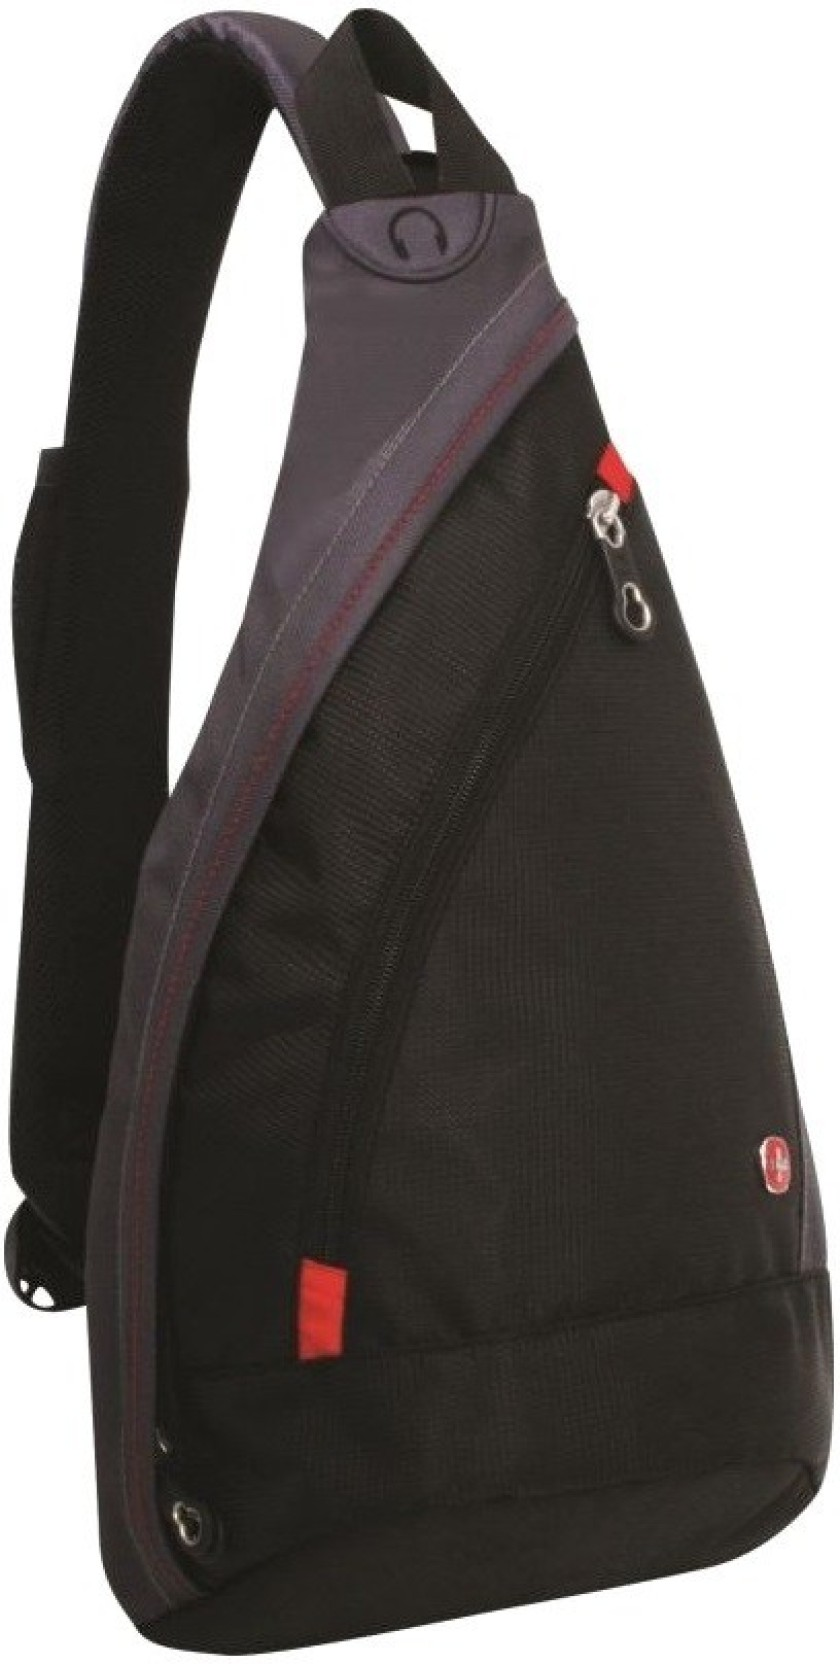 35c6643d7af0 Swiss Gear Backpack India Online- Fenix Toulouse Handball